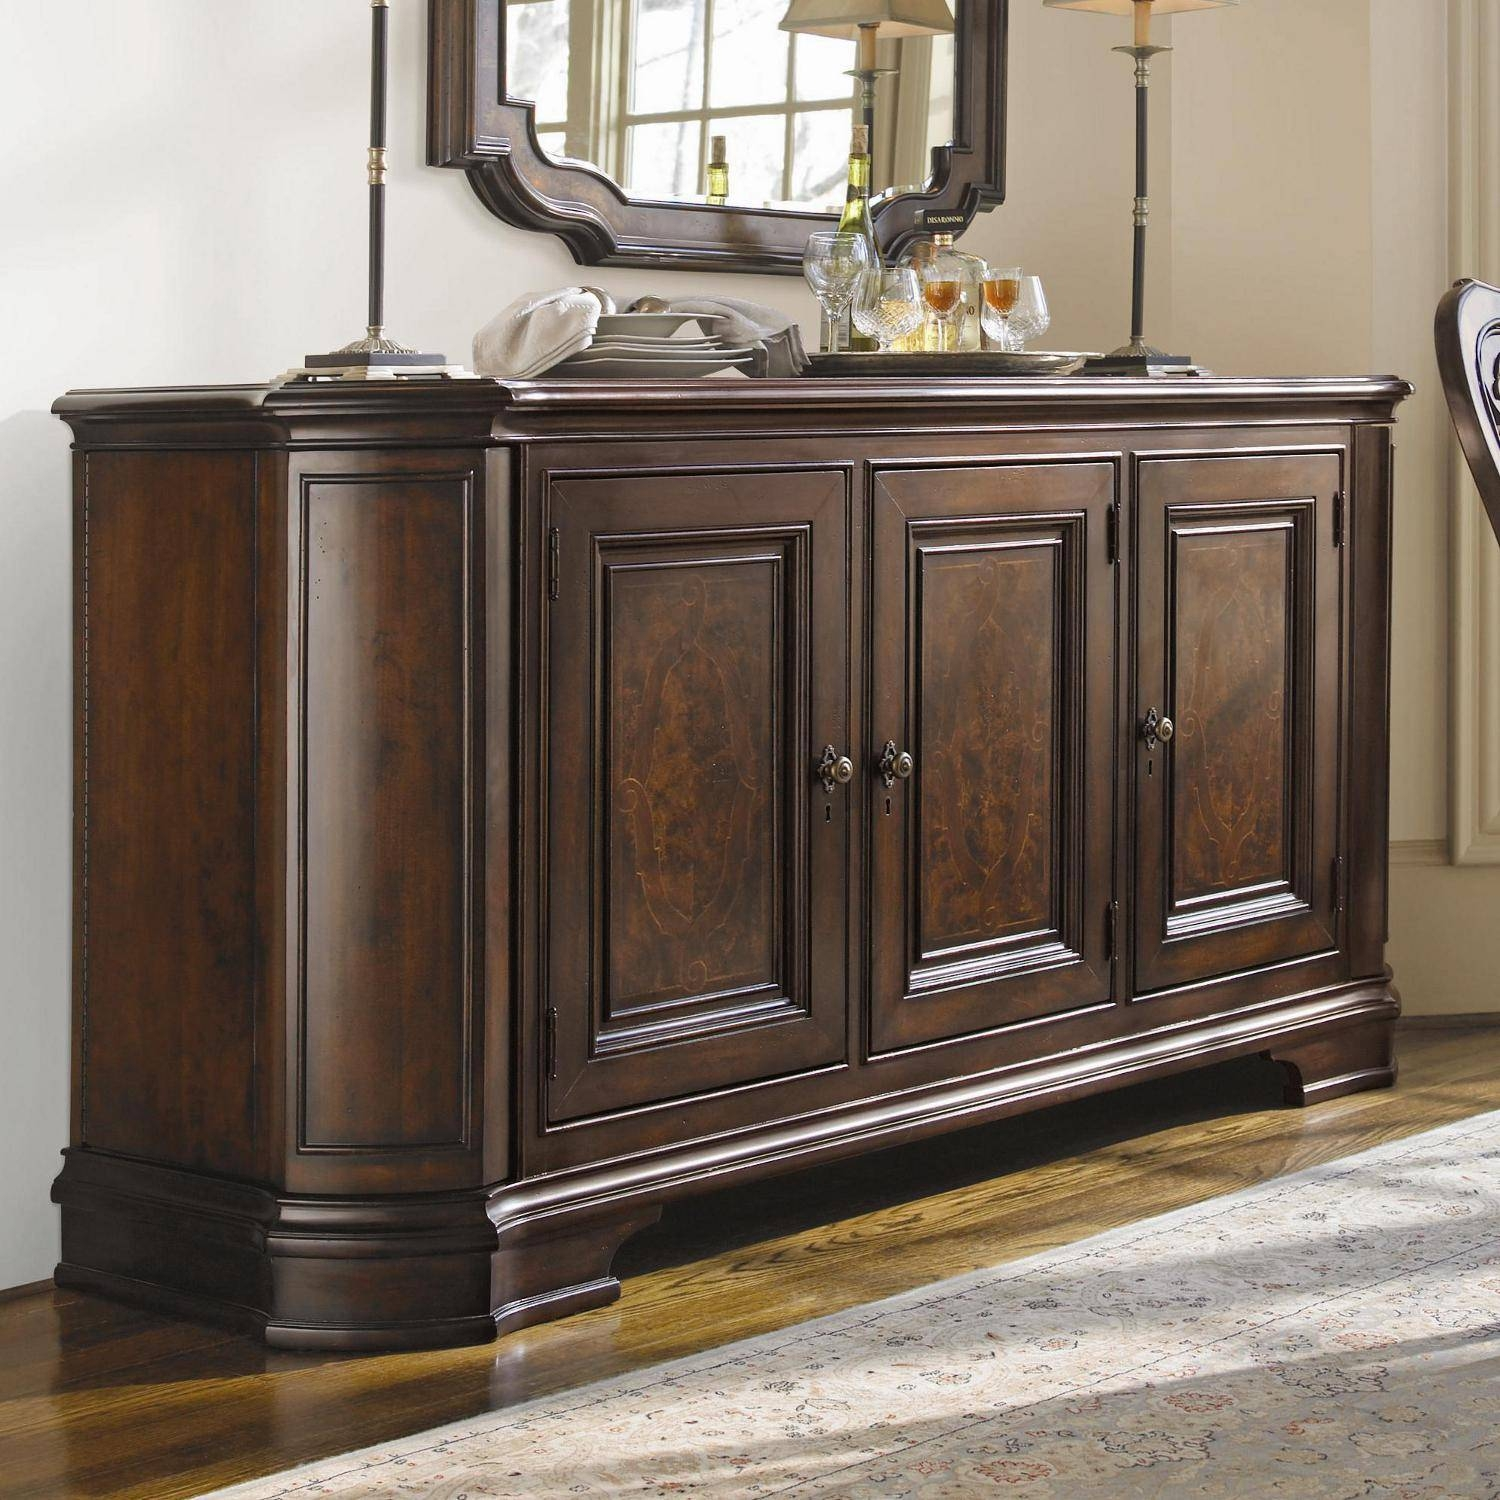 Vintage Sideboards And Buffets Furniture — New Decoration : The with Buffets Sideboards (Image 15 of 15)